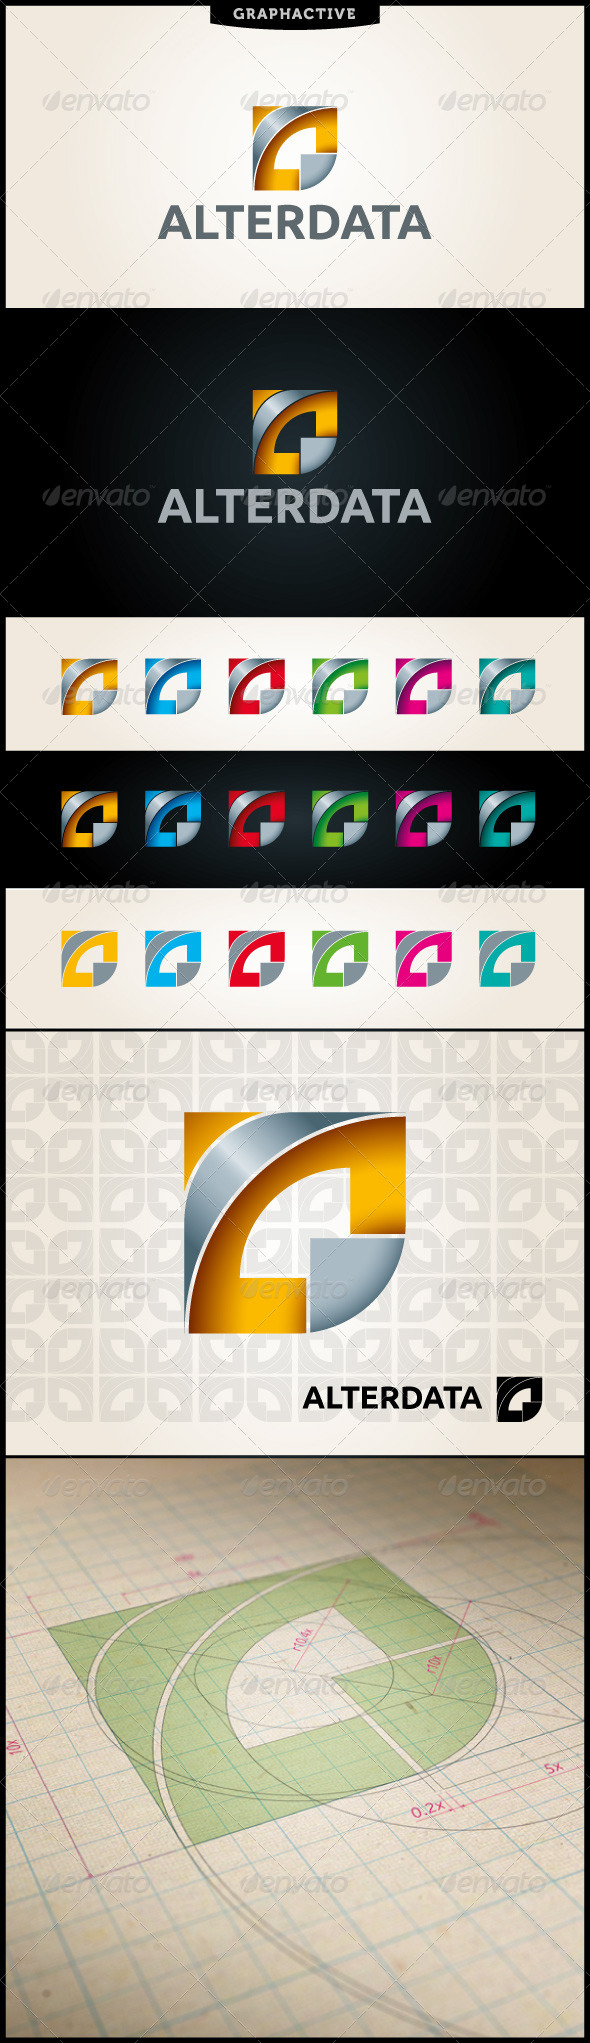 GraphicRiver Alterdata Abstract Logo Template 4173873